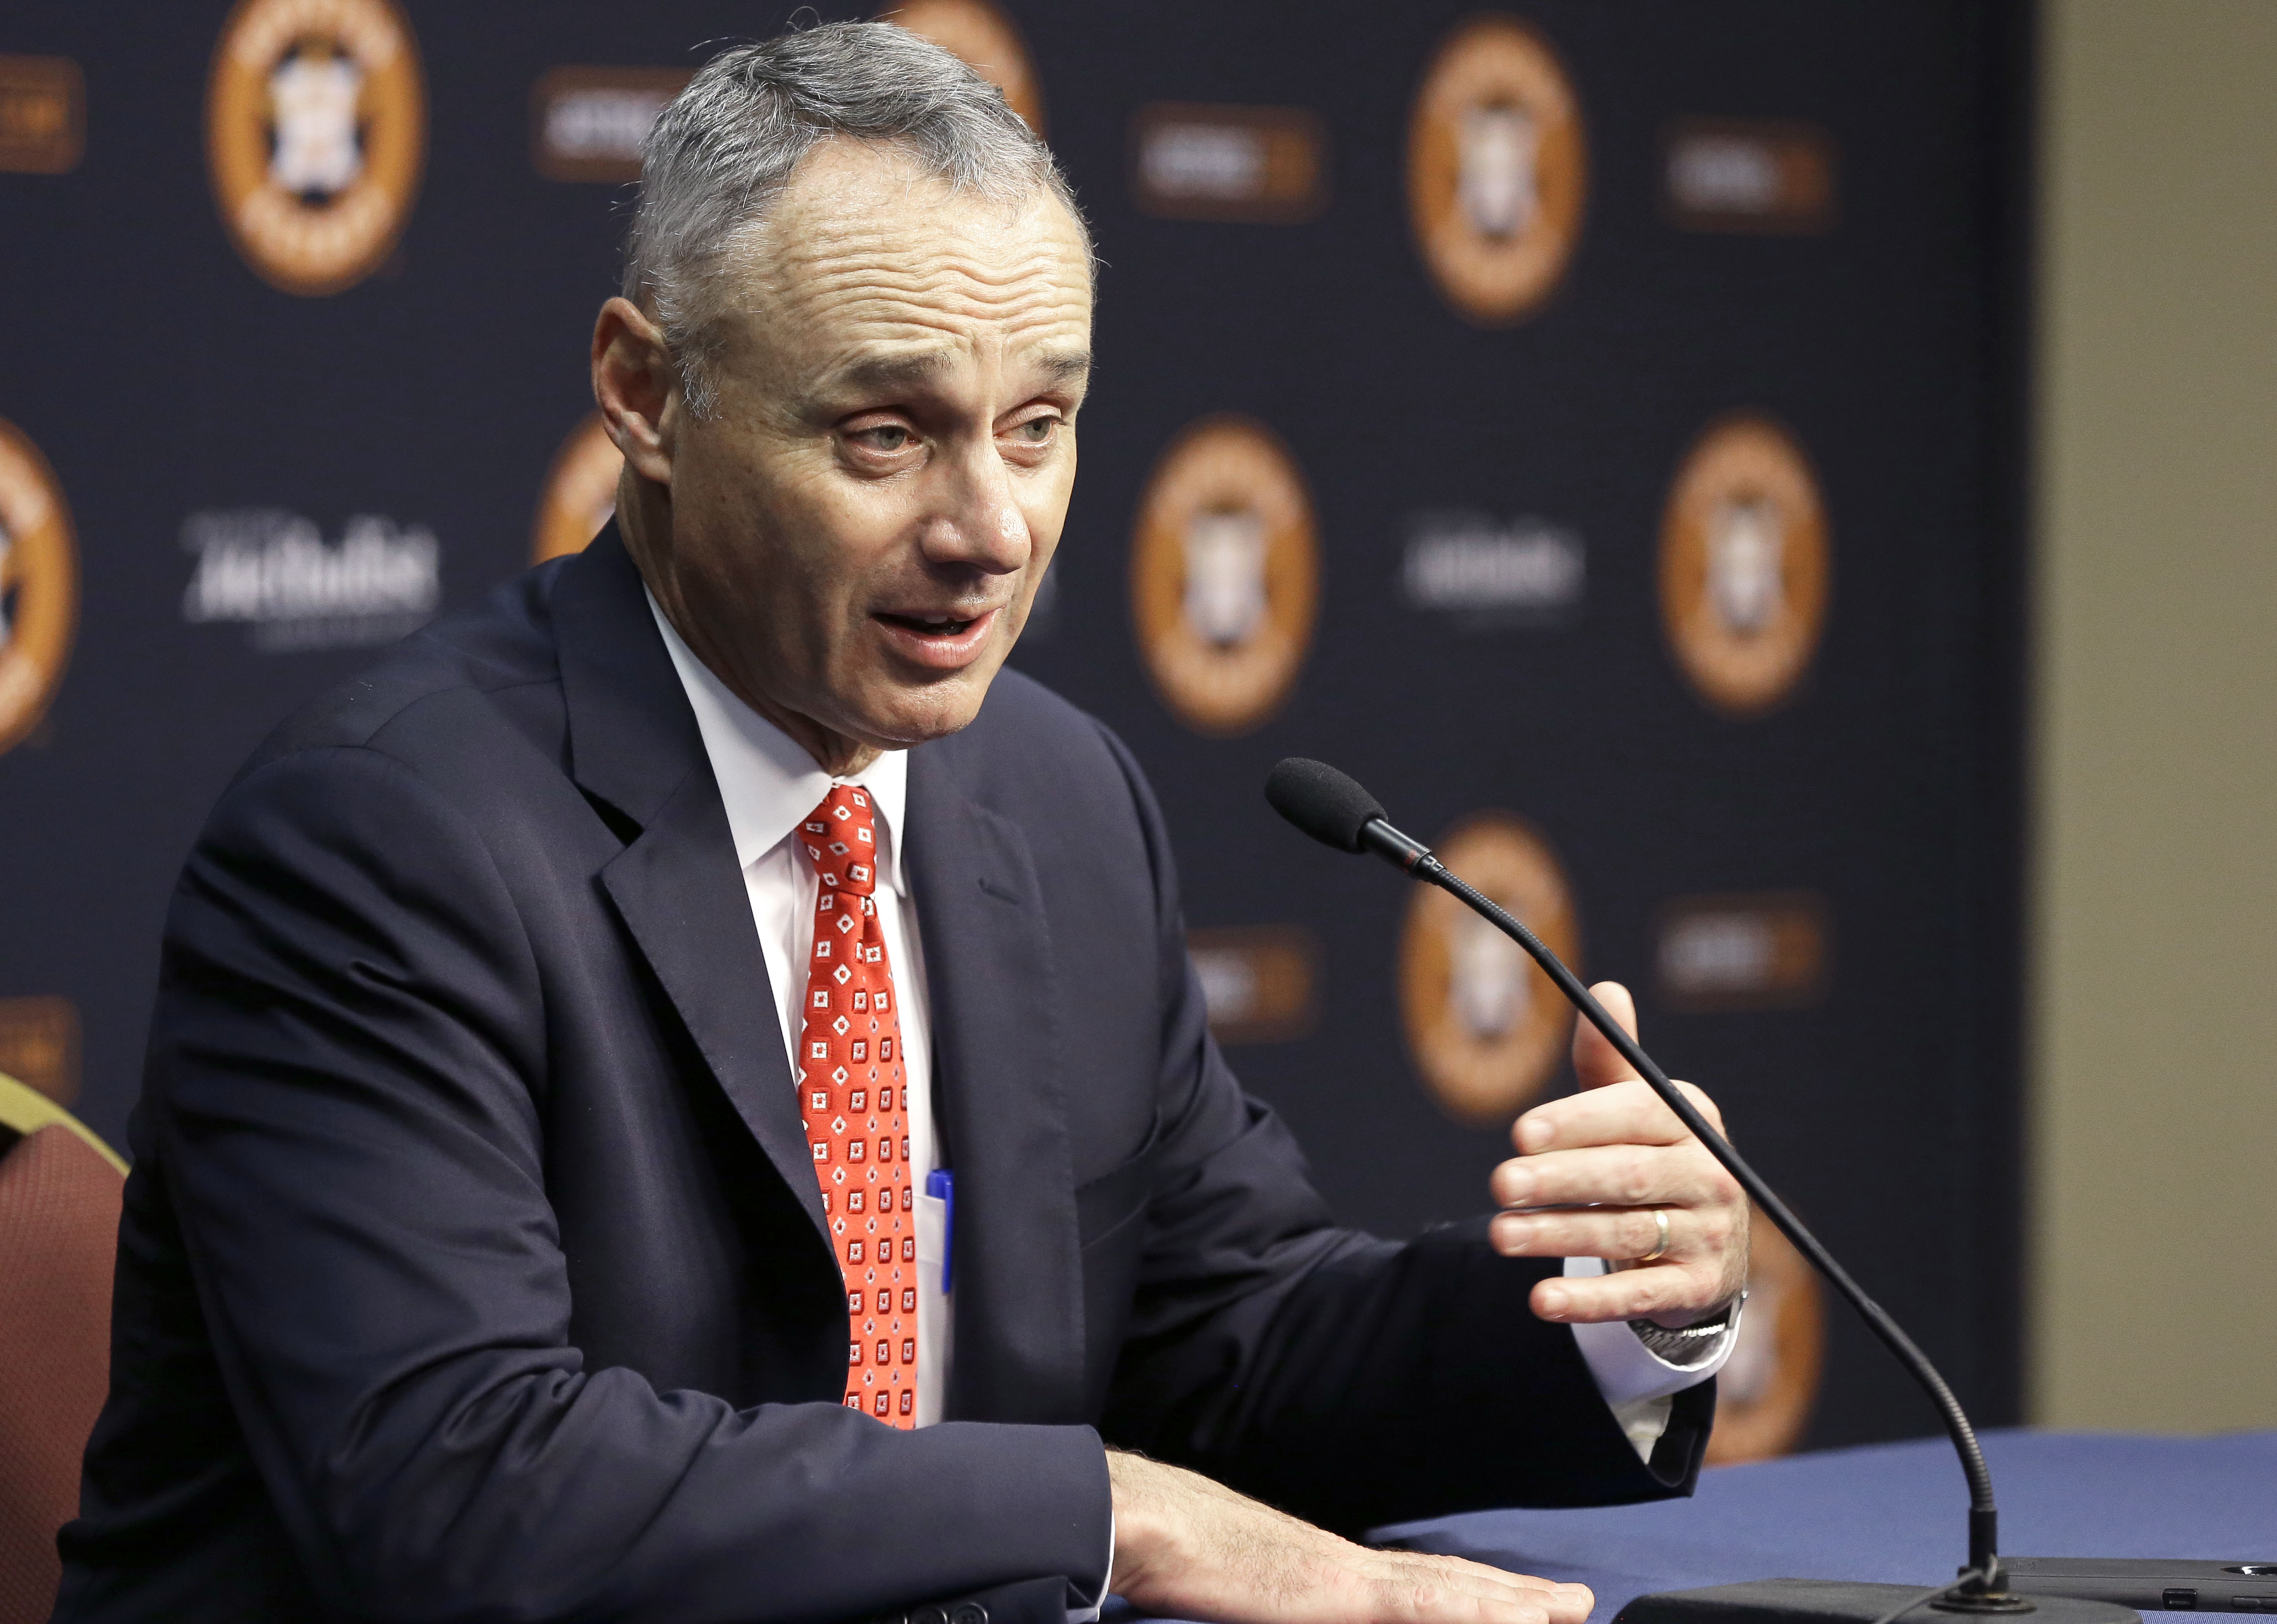 Major League Baseball Commissioner Rob Manfred speaks at a press conference before a baseball game between the Houston Astros and the Texas Rangers Wednesday, May 6, 2015, in Houston. (AP Photo/Pat Sullivan)